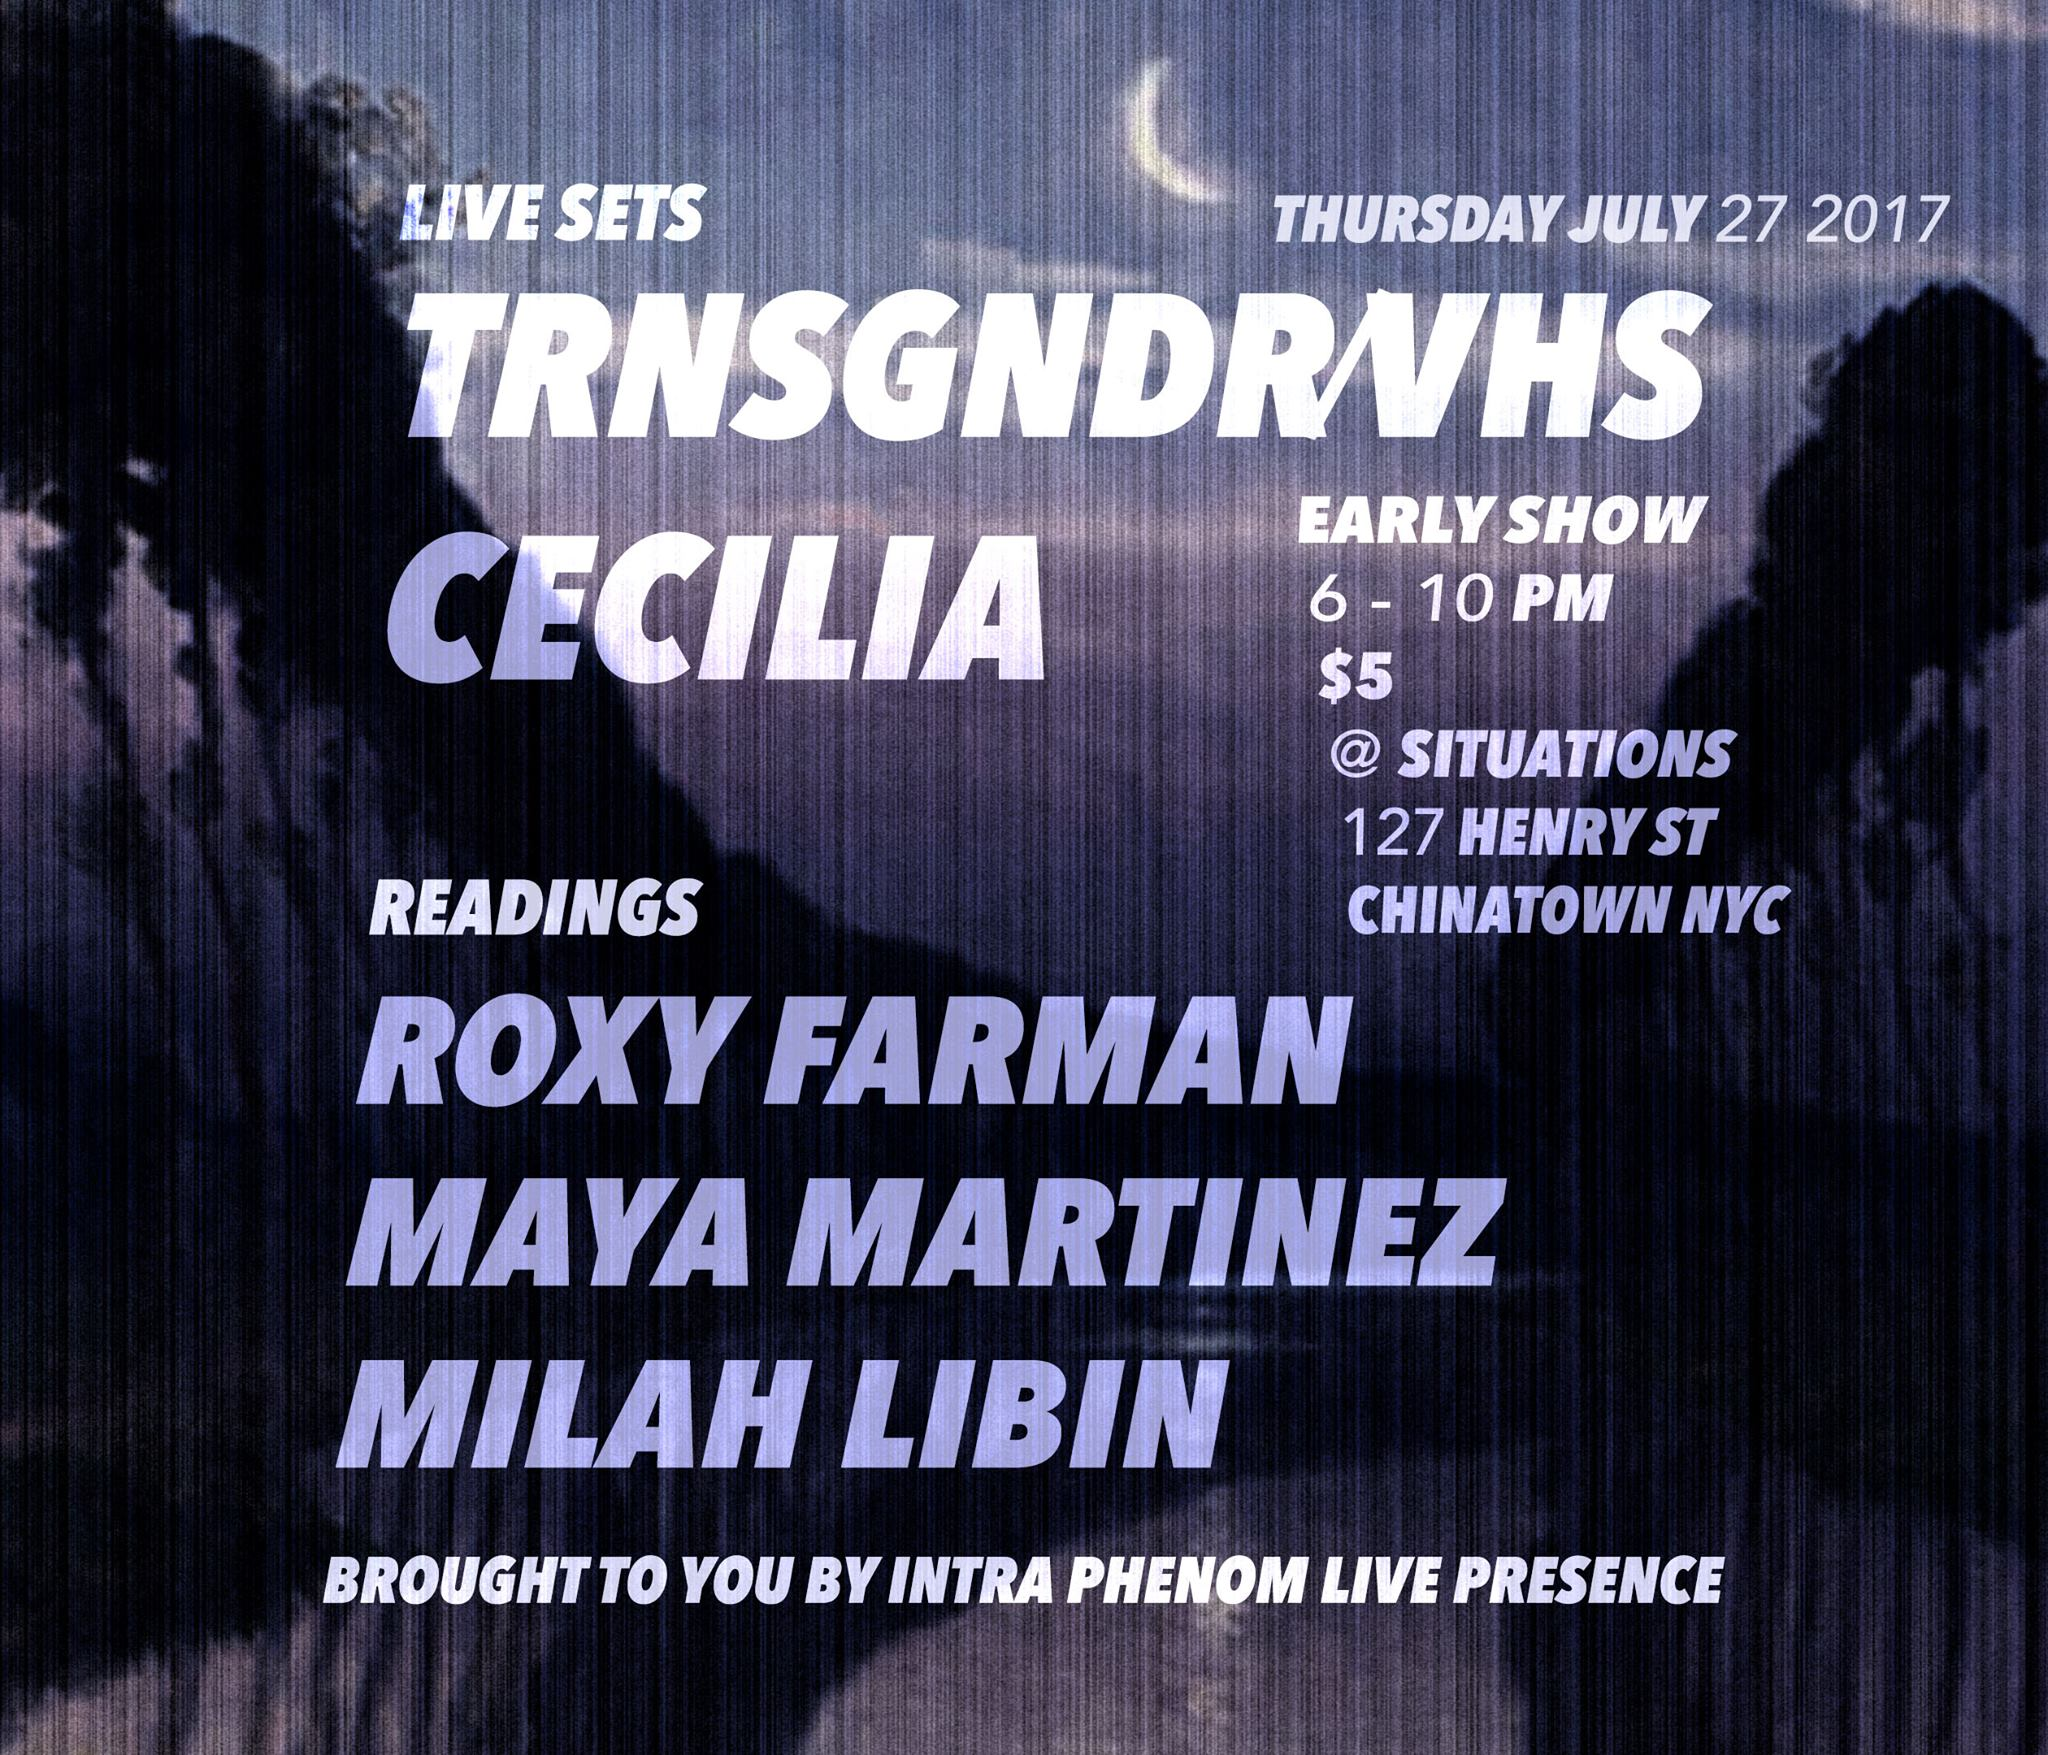 7_29 Live Sets & Readings Brought To You By Intra Phenom Live Pres.jpg